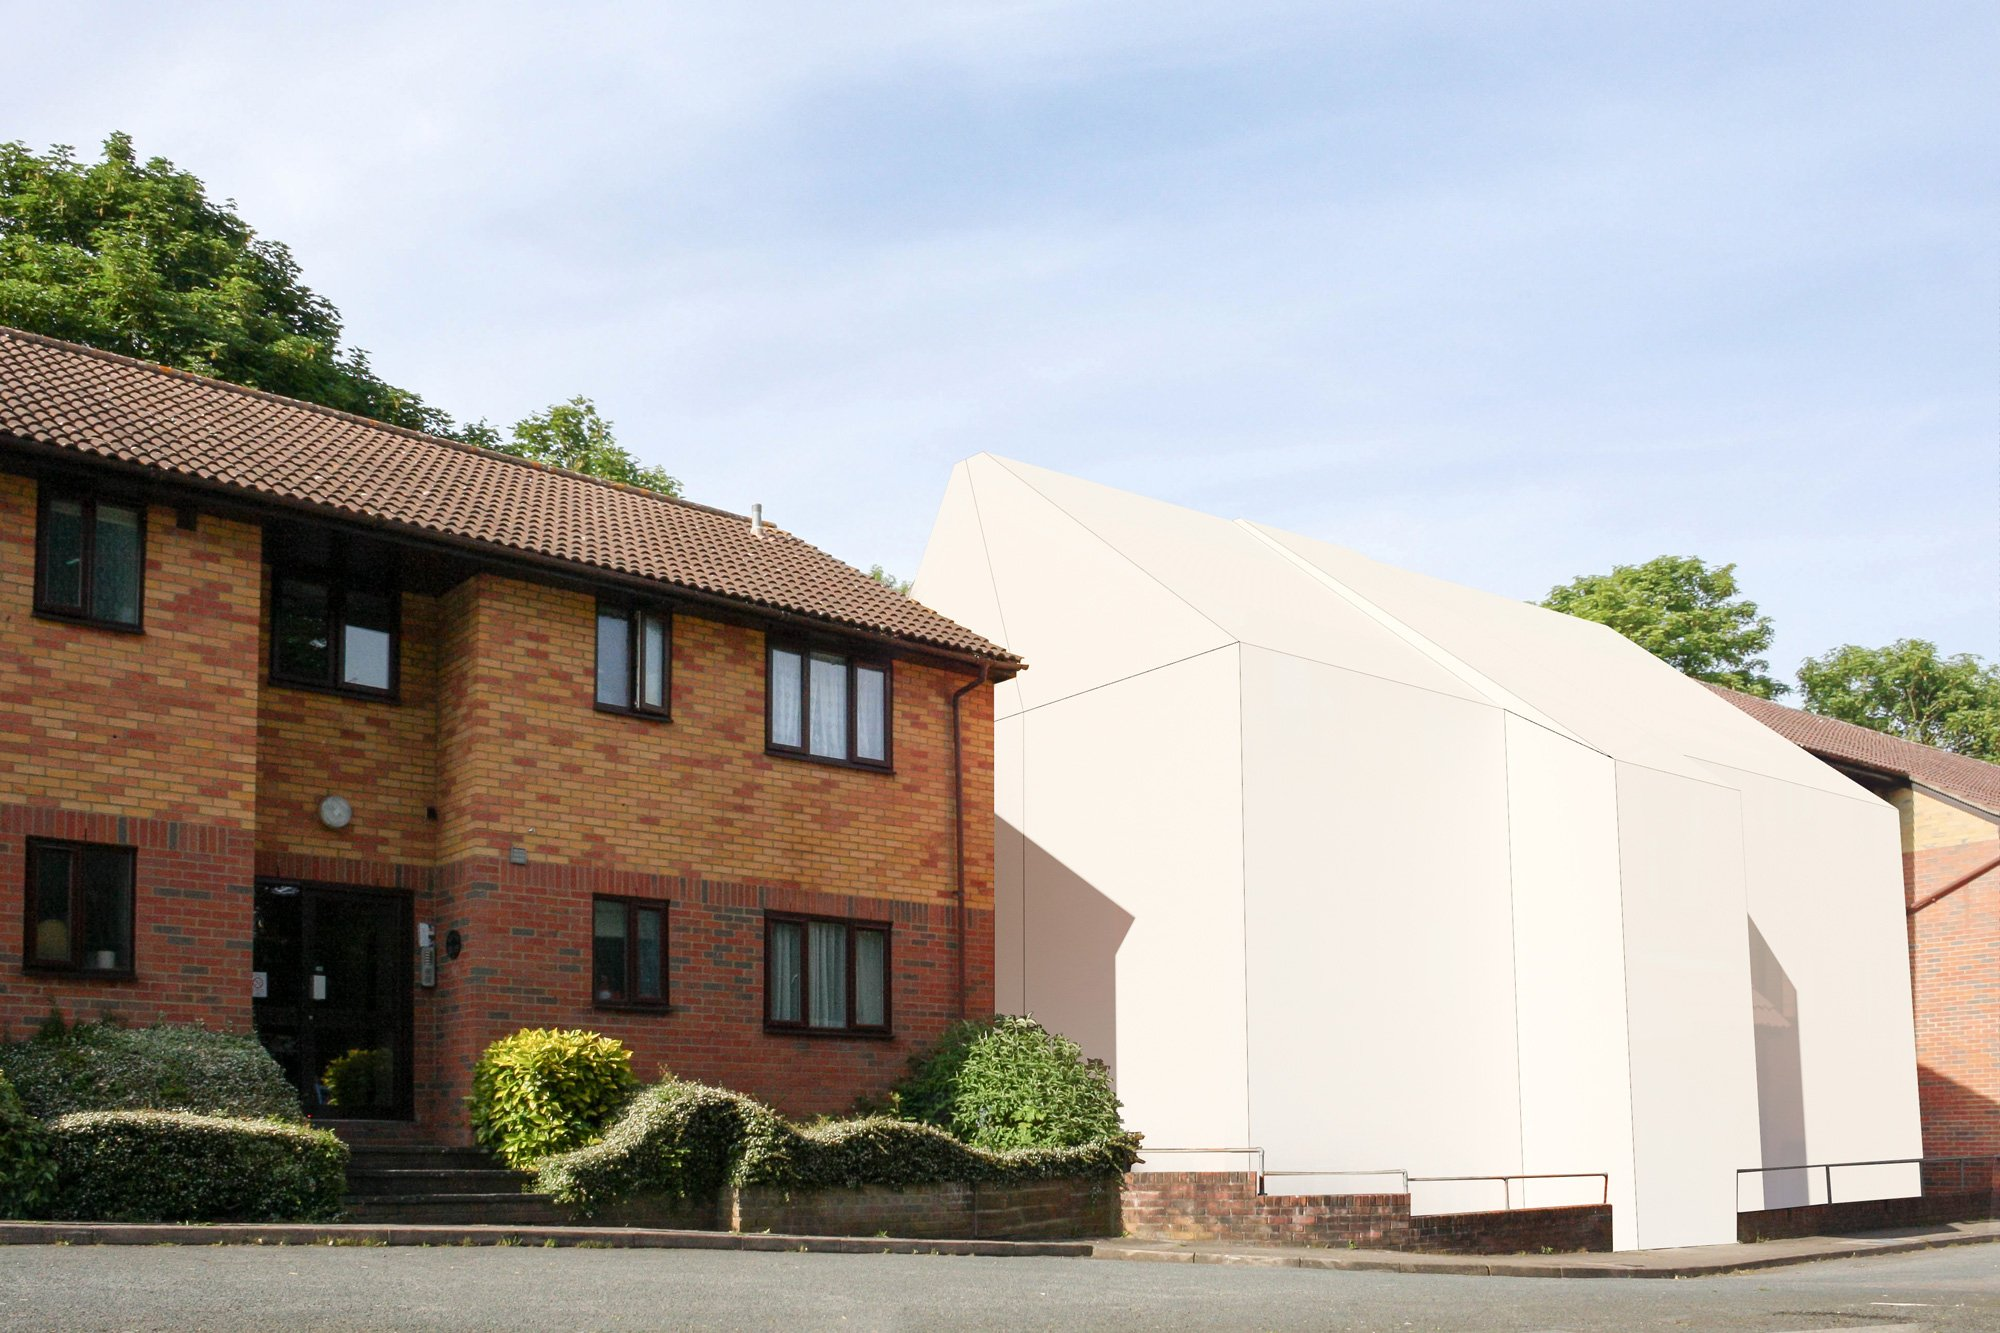 Mistakes property developers make when getting Property CGI done